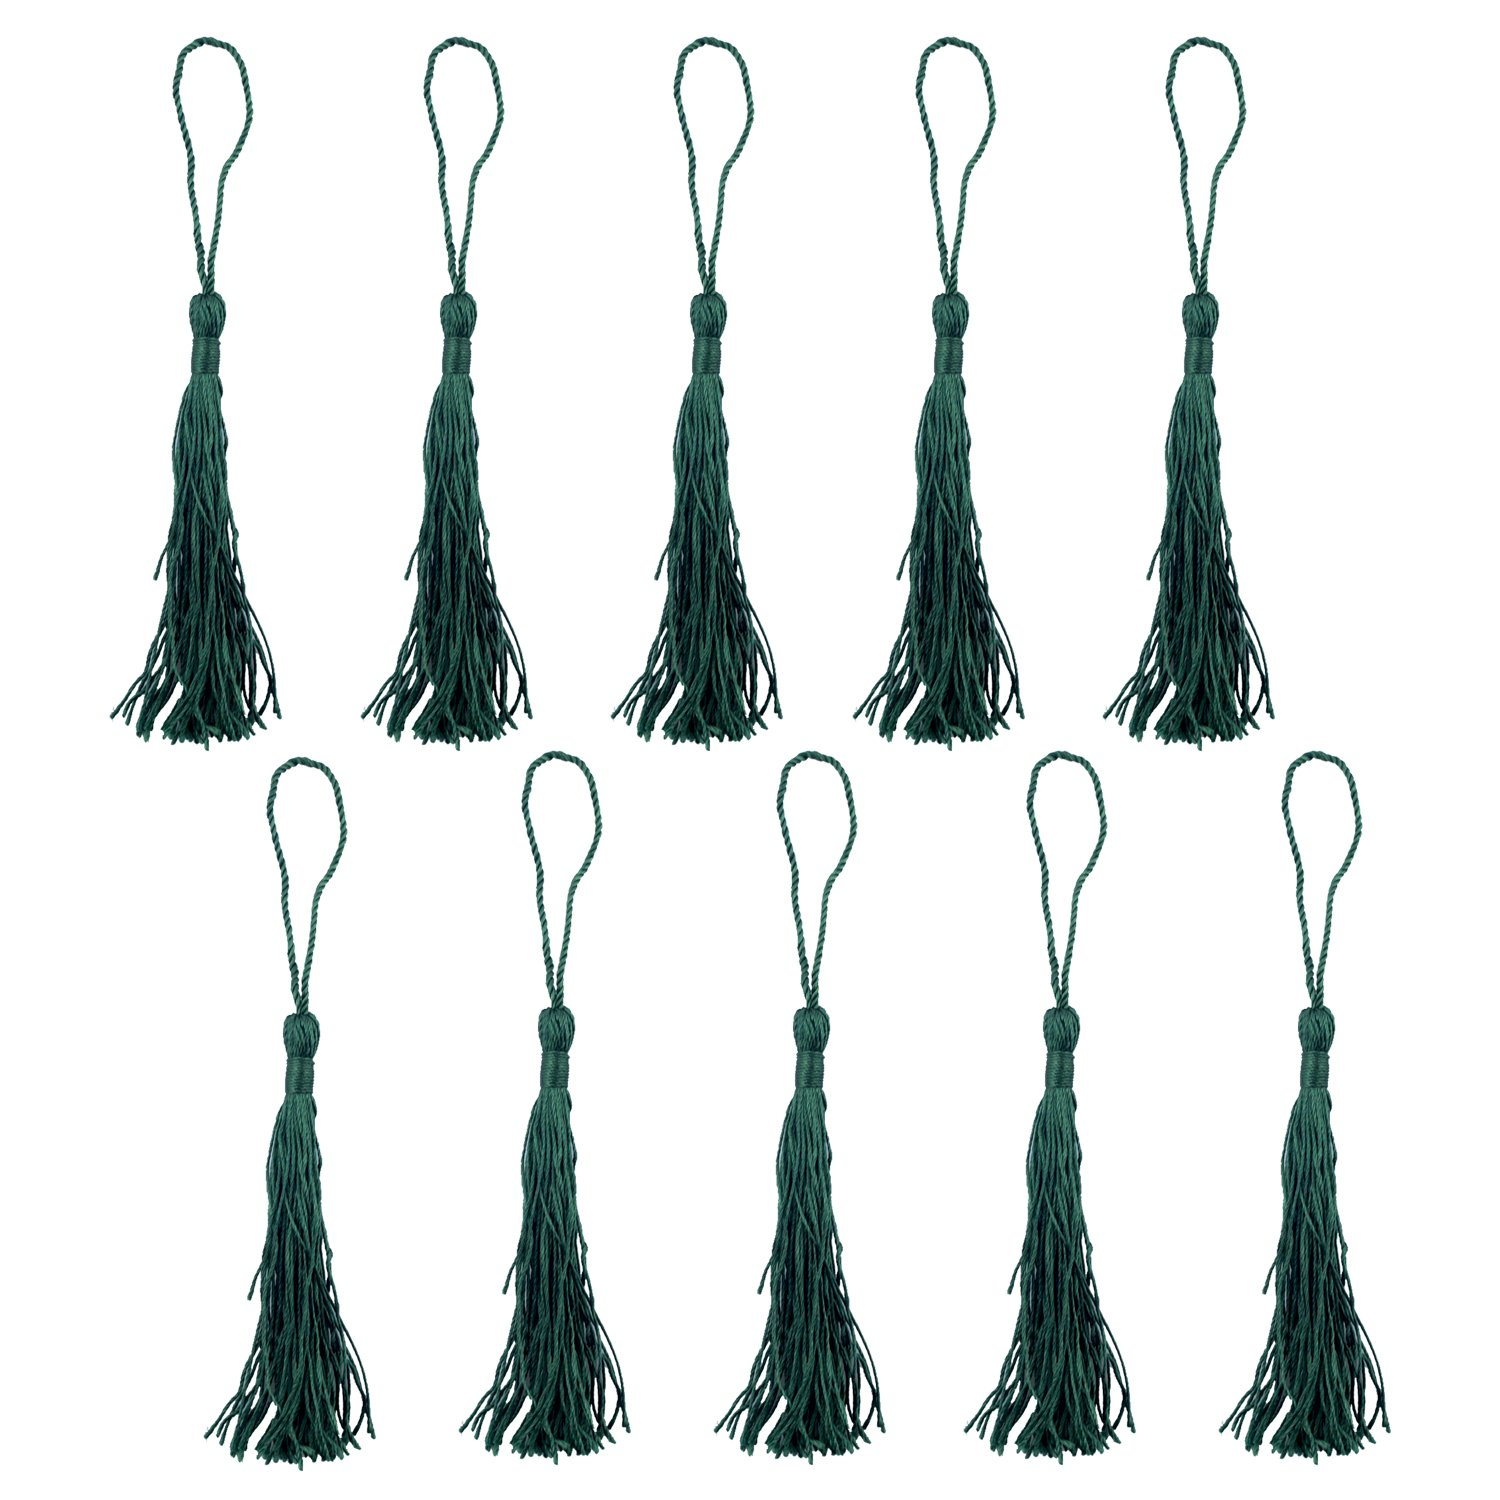 HAND ® Silky Tassels Grey 12cm Long For Craft Embellishments, Purses, Bags, Keyrings etc. Pack of 10